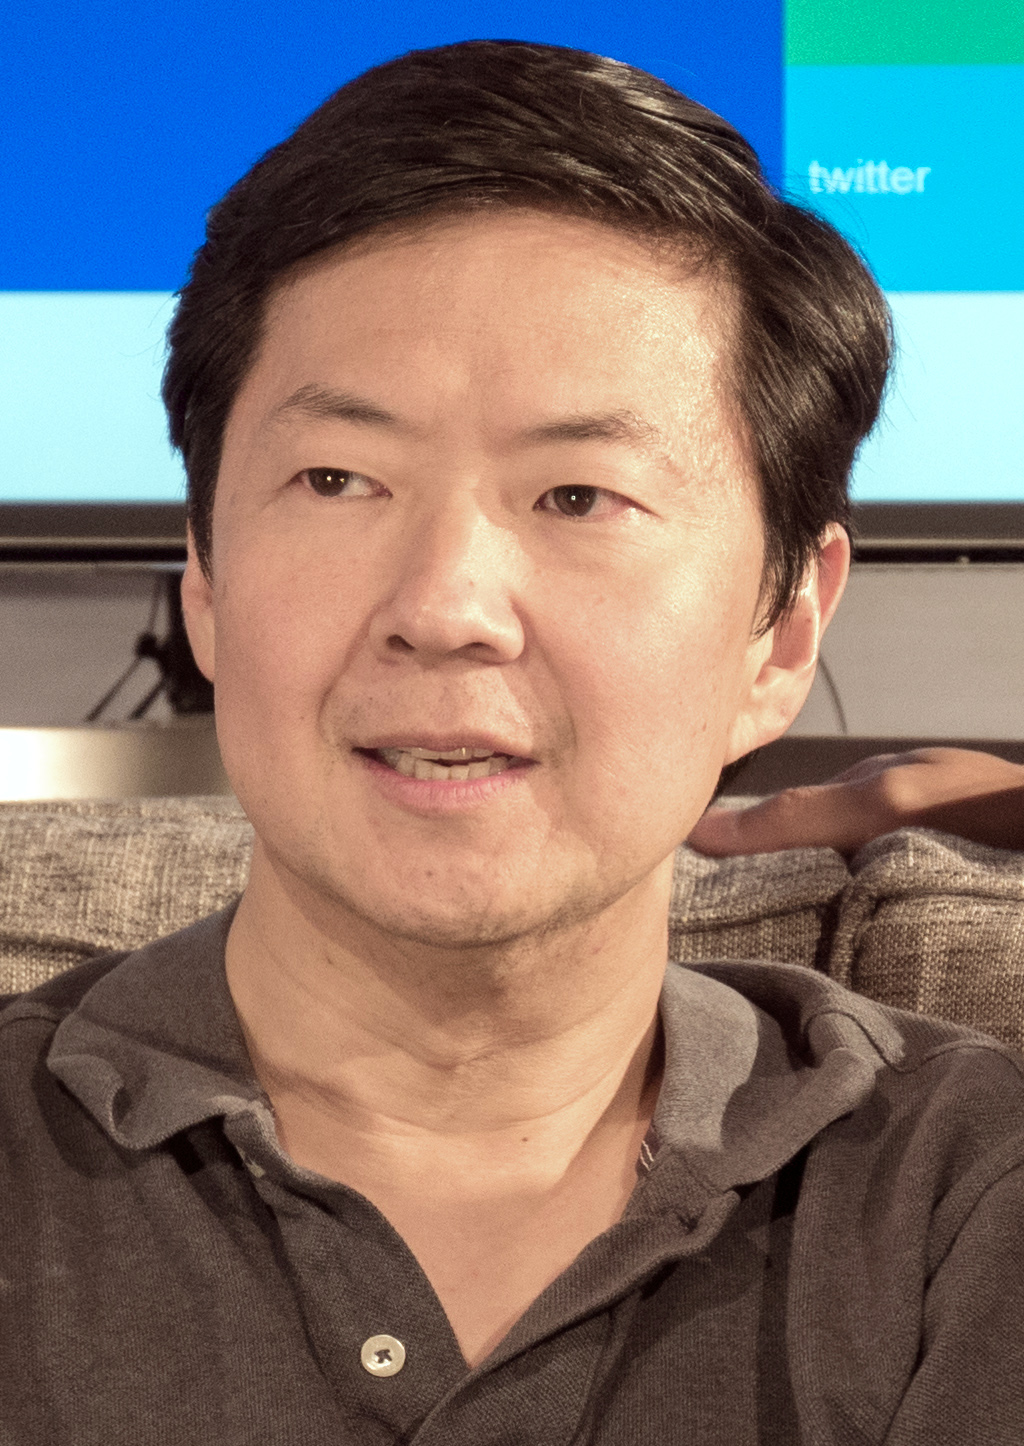 ken jeong gleeken jeong gif, ken jeong paper, ken jeong stand up, ken jeong instagram, ken jeong movies, ken jeong bradley cooper, ken jeong kate upton, ken jeong wiki, ken jeong daughters, ken jeong the office, ken jeong bradley cooper friends, ken jeong insta, ken jeong filmography, ken jeong filmografia, ken jeong house, ken jeong conan, ken jeong bobby lee, ken jeong glee, ken jeong medic, ken jeong mtv movie awards